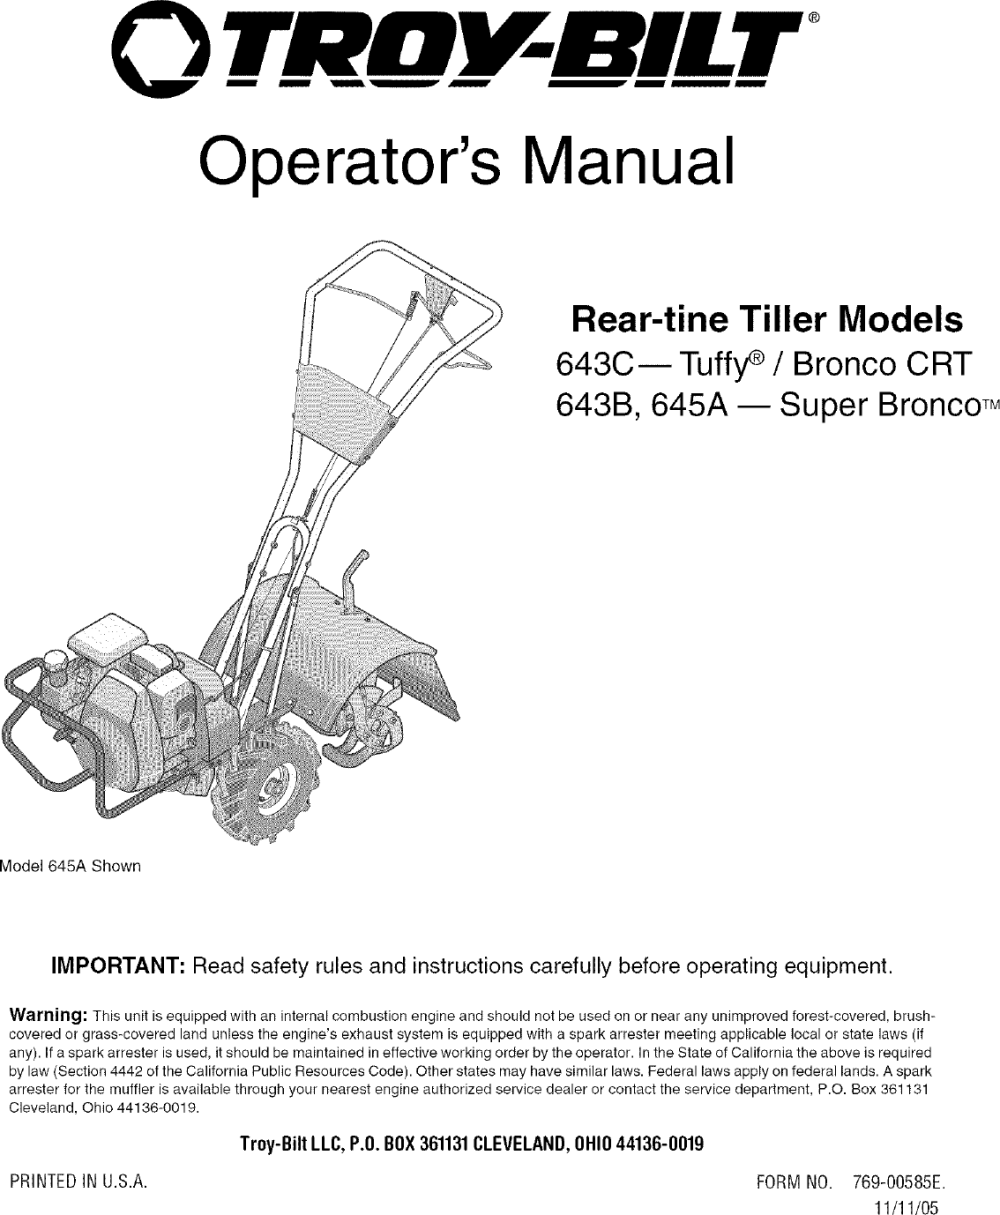 medium resolution of troybilt 21a 643b711 user manual rear tine tiller manuals and guides l0601227